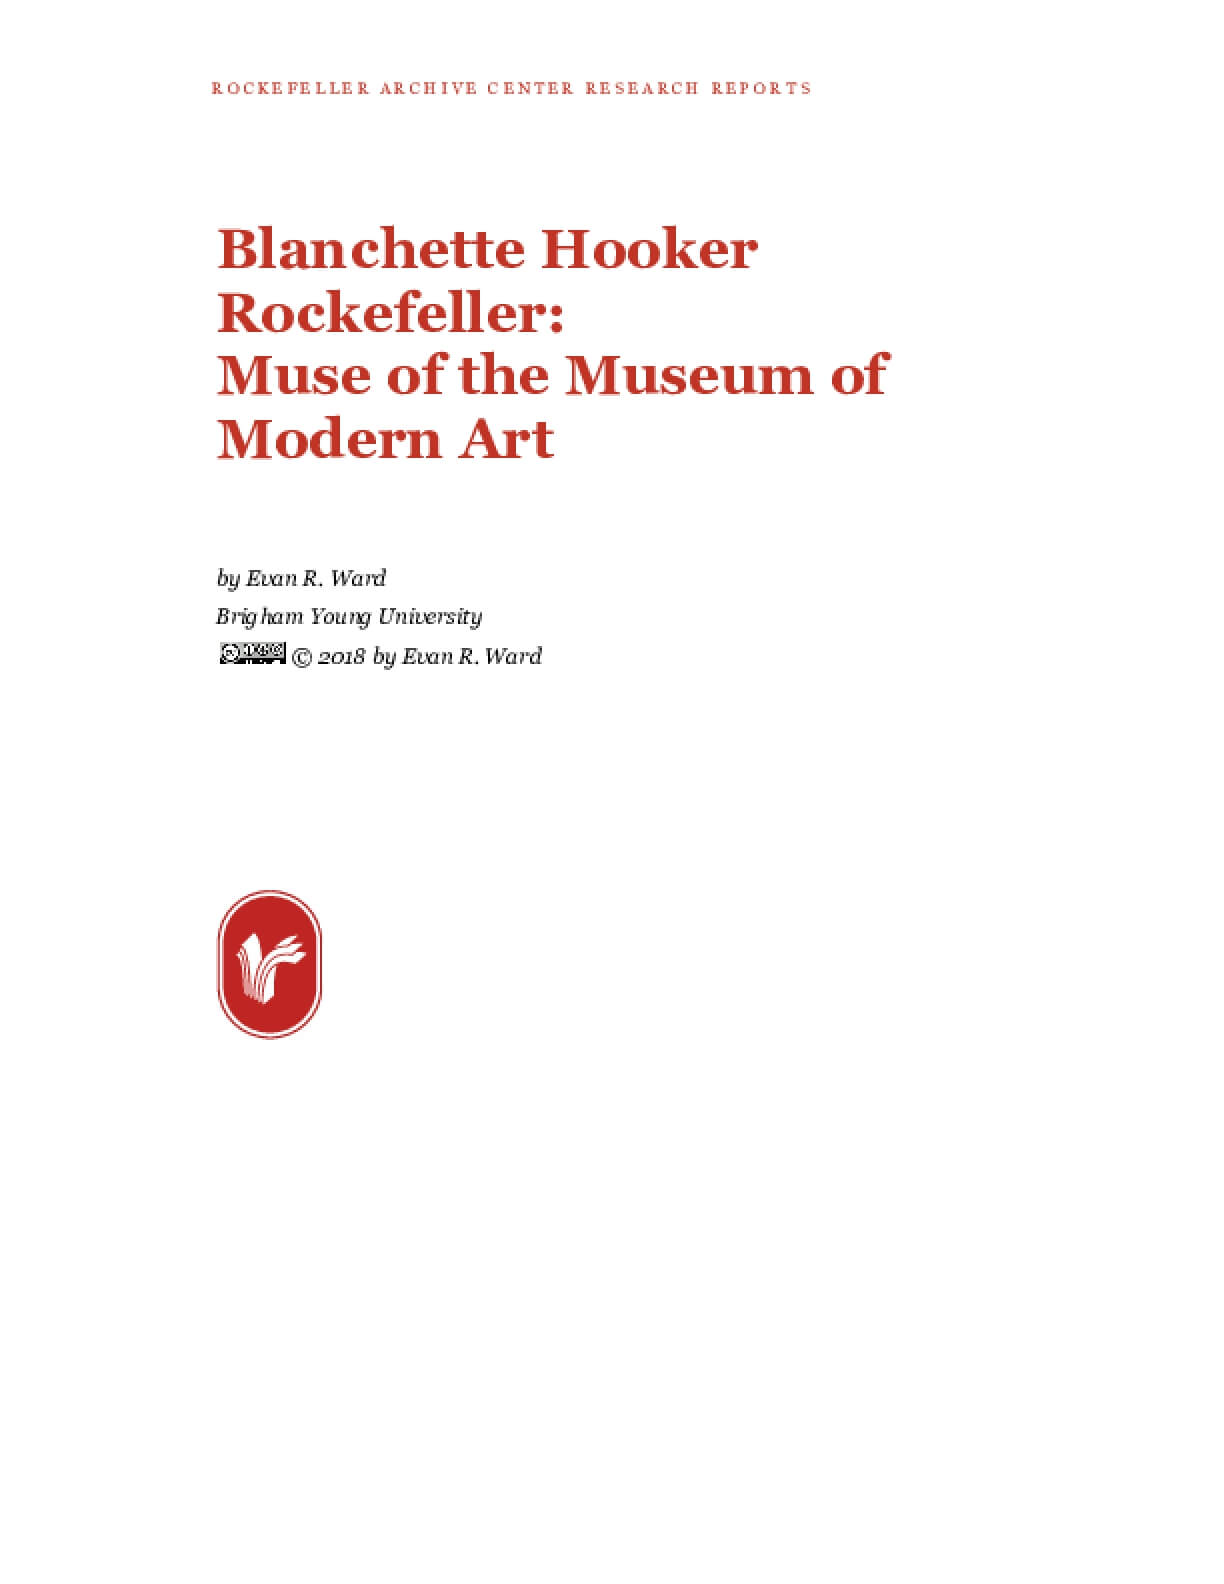 Blanchette Hooker Rockefeller: Muse of the Museum of Modern Art